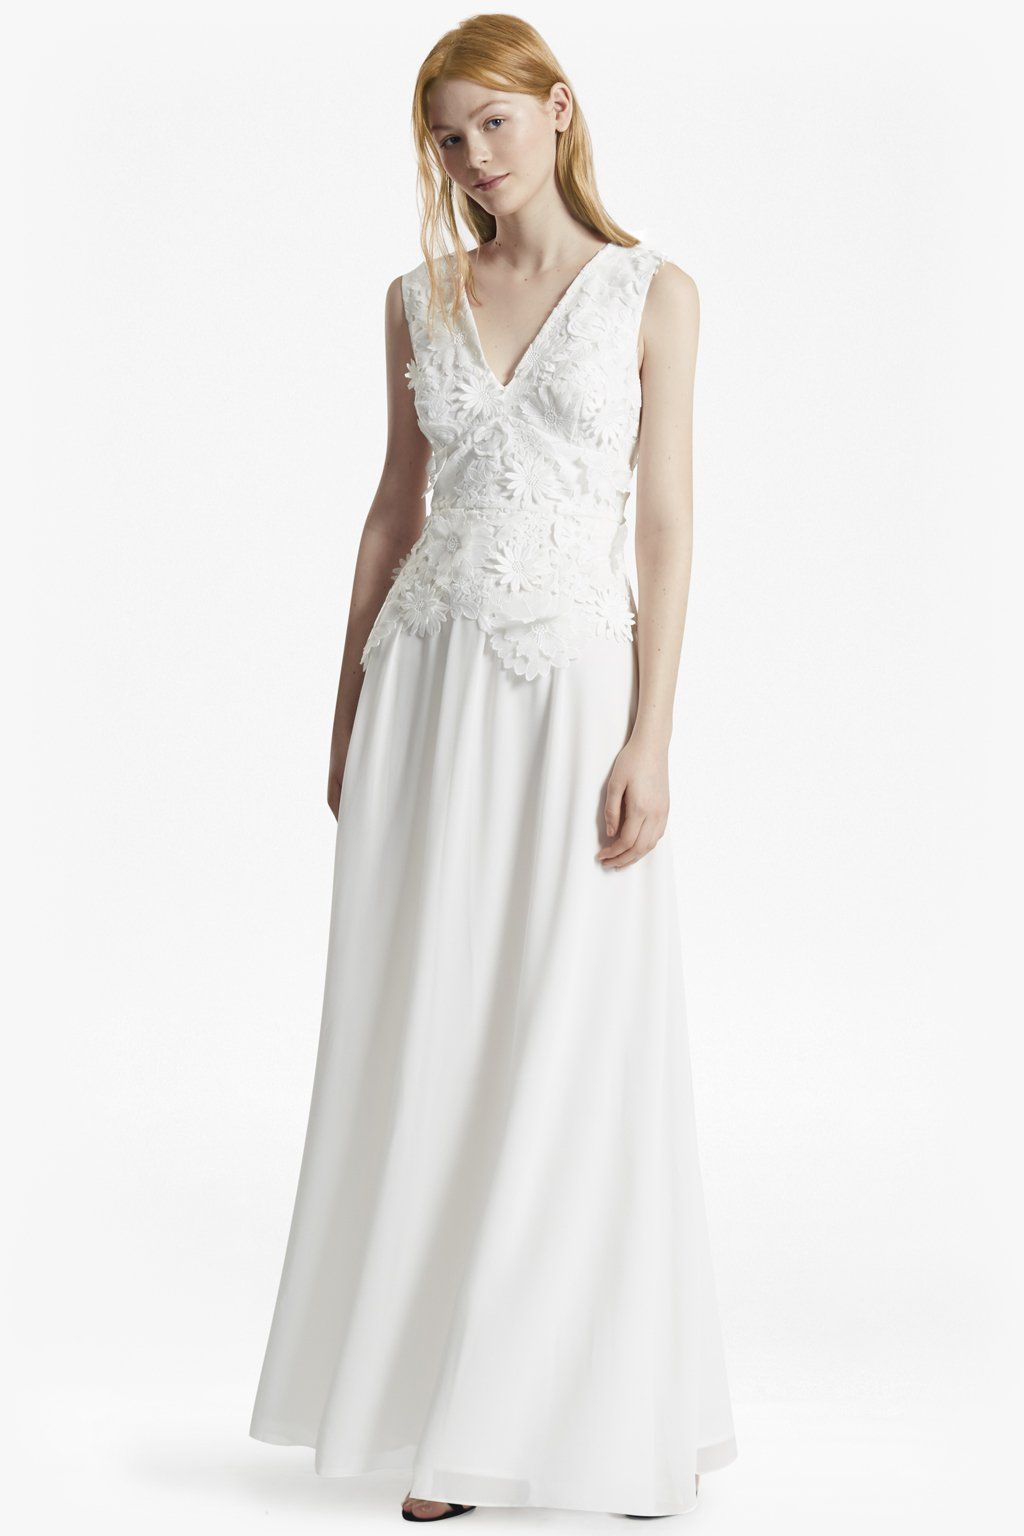 Manzoni 3D Floral Lace Maxi Dress | Bridal Dresses | French ...